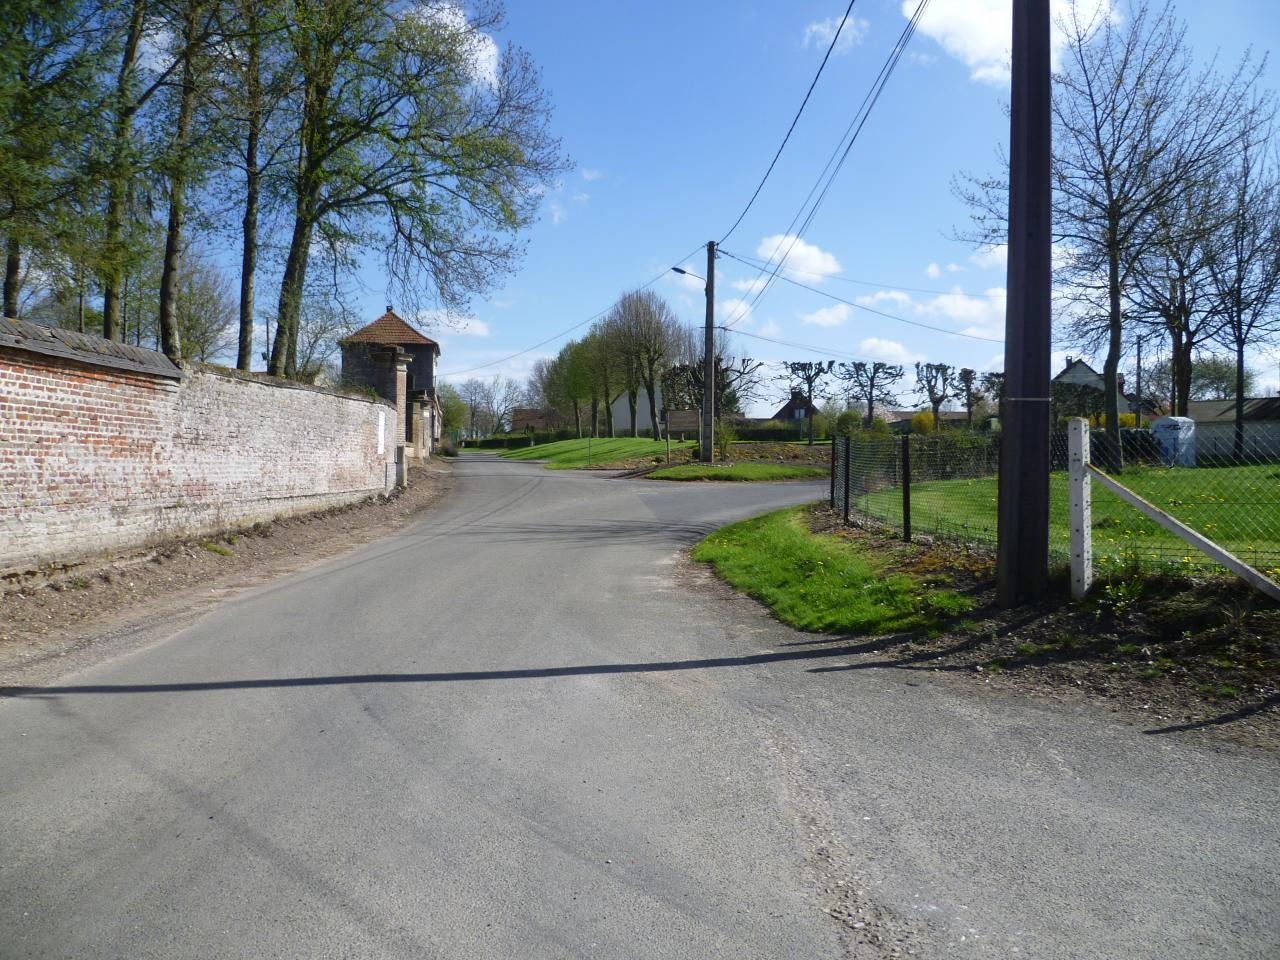 Route de Brailly